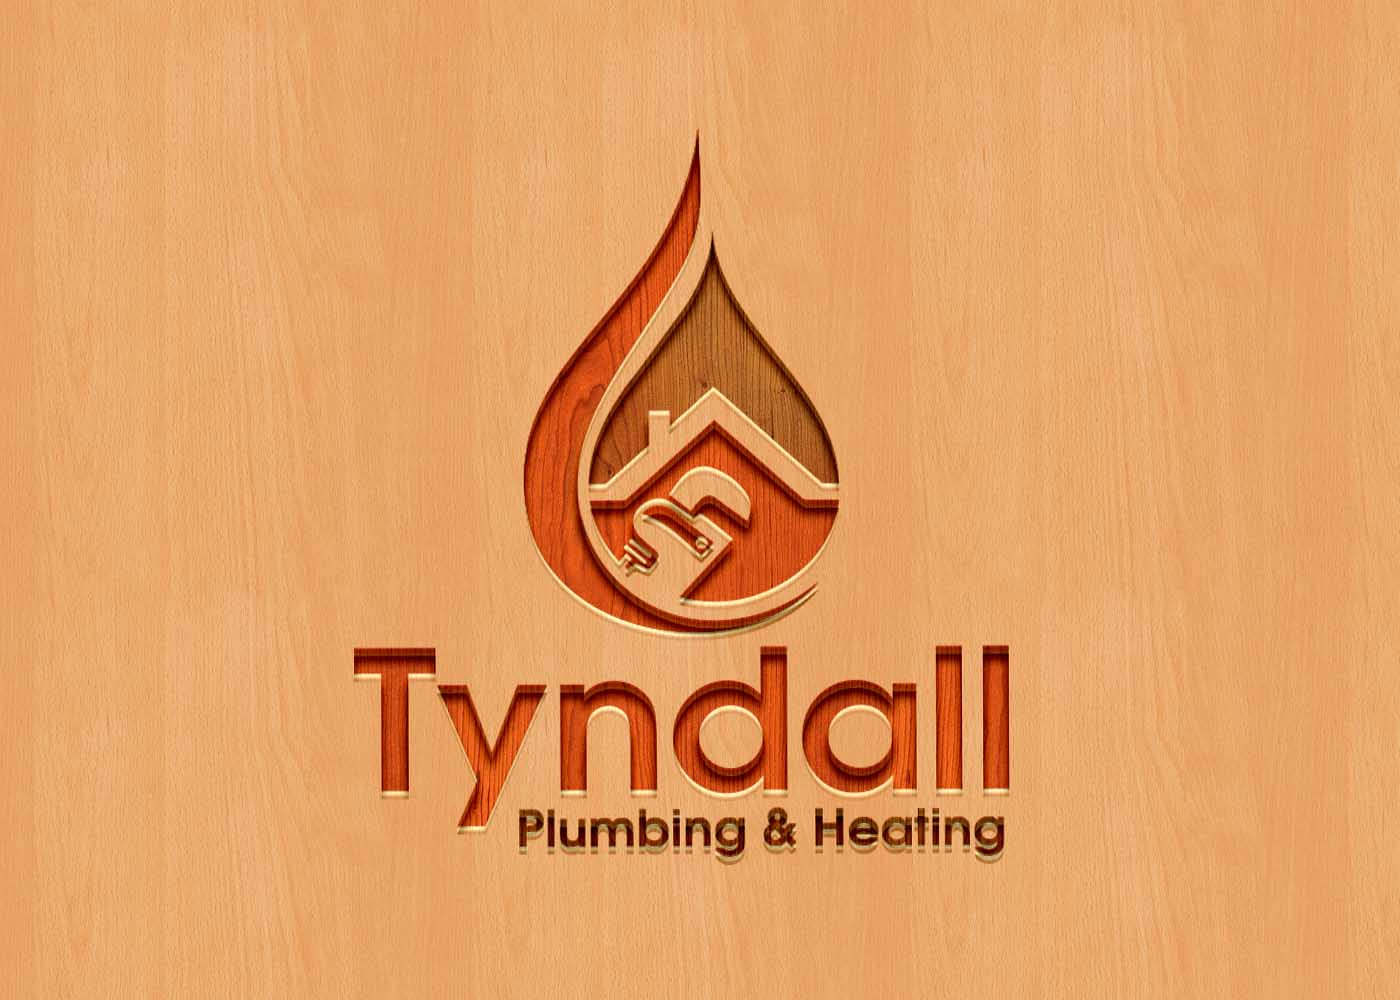 Logo Design by Private User - Entry No. 47 in the Logo Design Contest Imaginative Logo Design for Tyndall Plumbing & Heating.